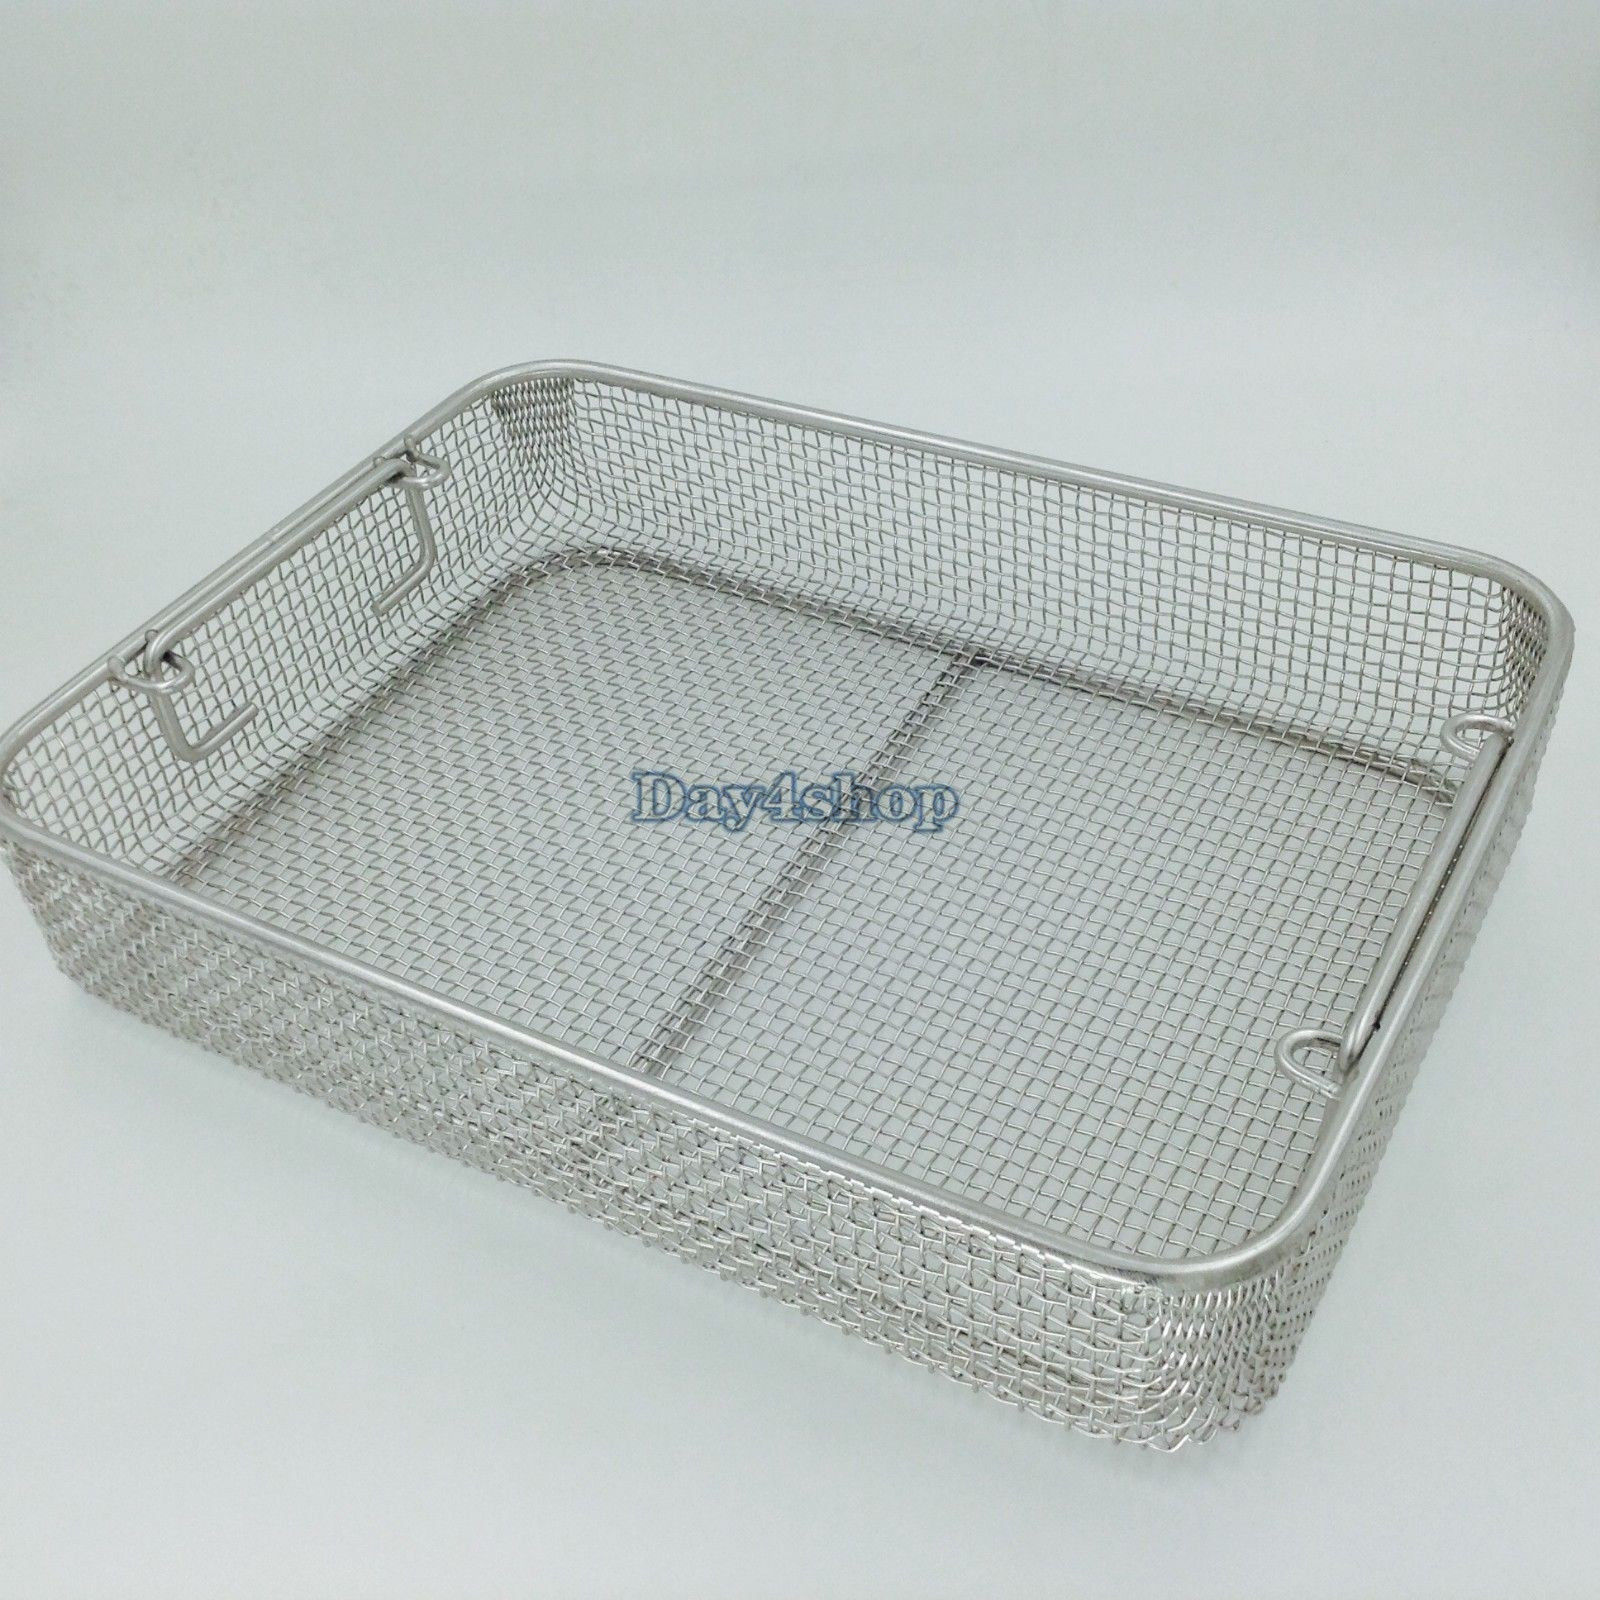 Stainless steel sterilization tray case box surgical instrument surgical ophthalmic instruments vizant 750gst